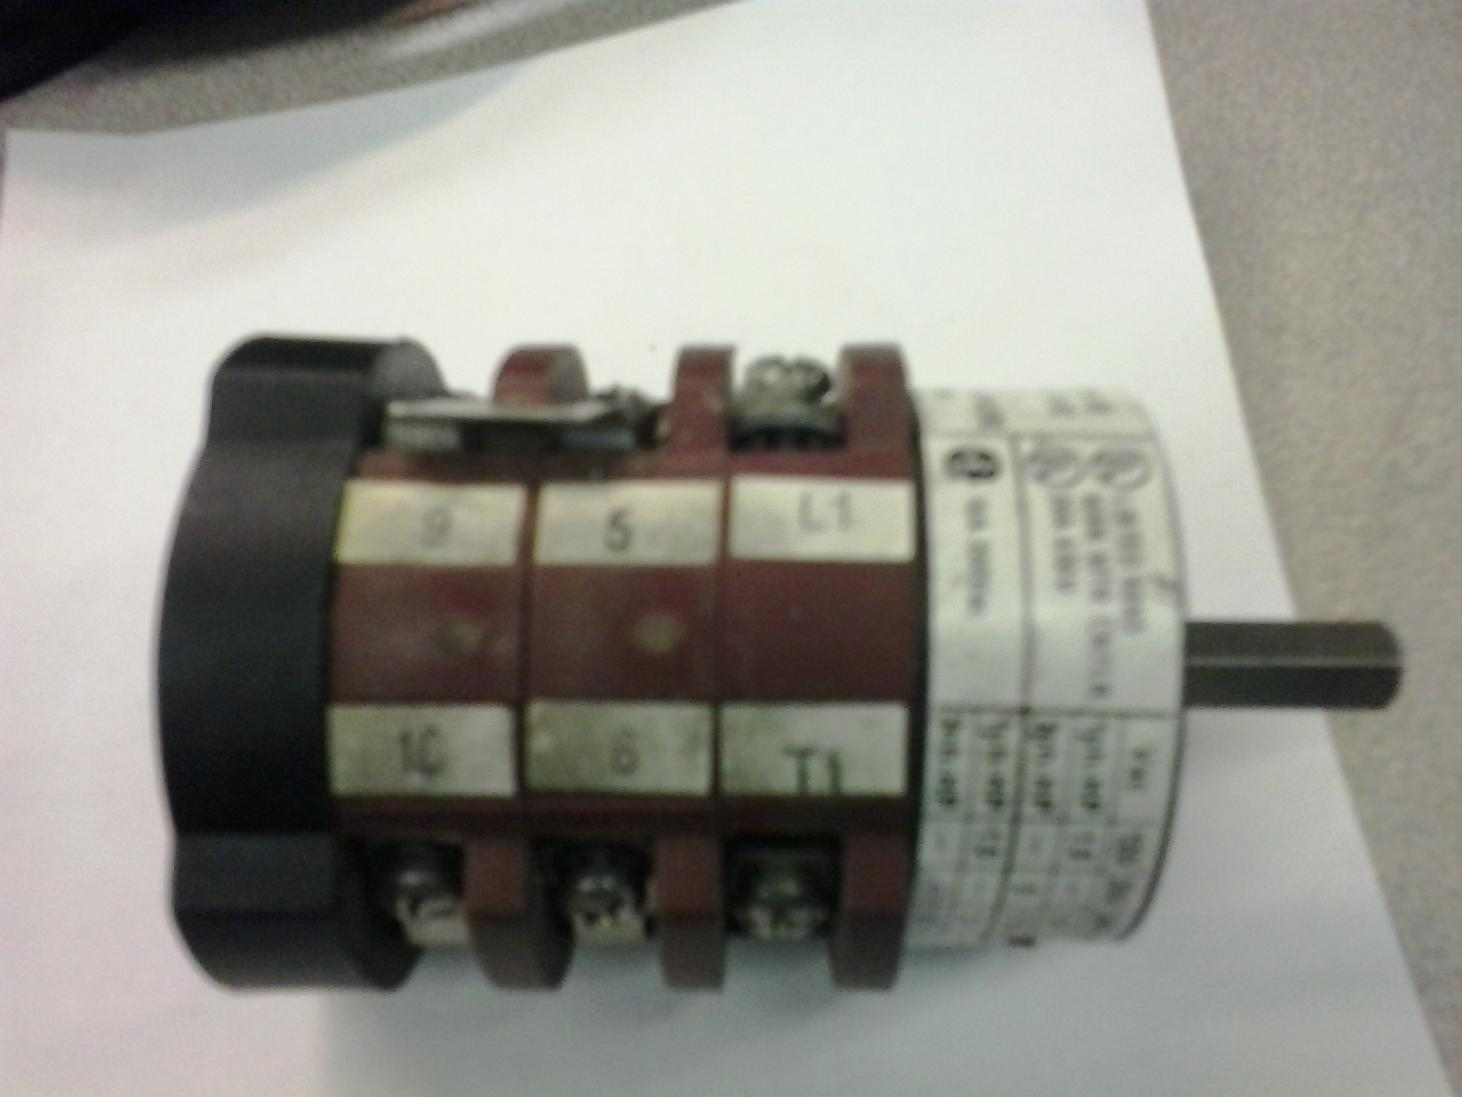 110612d1403850213-wiring-bridgeport-new-switch-140626_004 Wiring In Series on lighting in series, springs in series, electrical impedance, doors in series, valves in series, linear circuit, lamps in series, current limiting, resistors in series, filters in series, mesh analysis, electronic component, electronic circuit, power in series, electronic filter, painting in series, lights in series, panels in series, circuits in series, nodal analysis, generators in series, motors in series, antenna in series, pumps in series, bulbs in series, electrical ballast, voltage in series, lumped element model, transformers in series, electrical network, components in series,